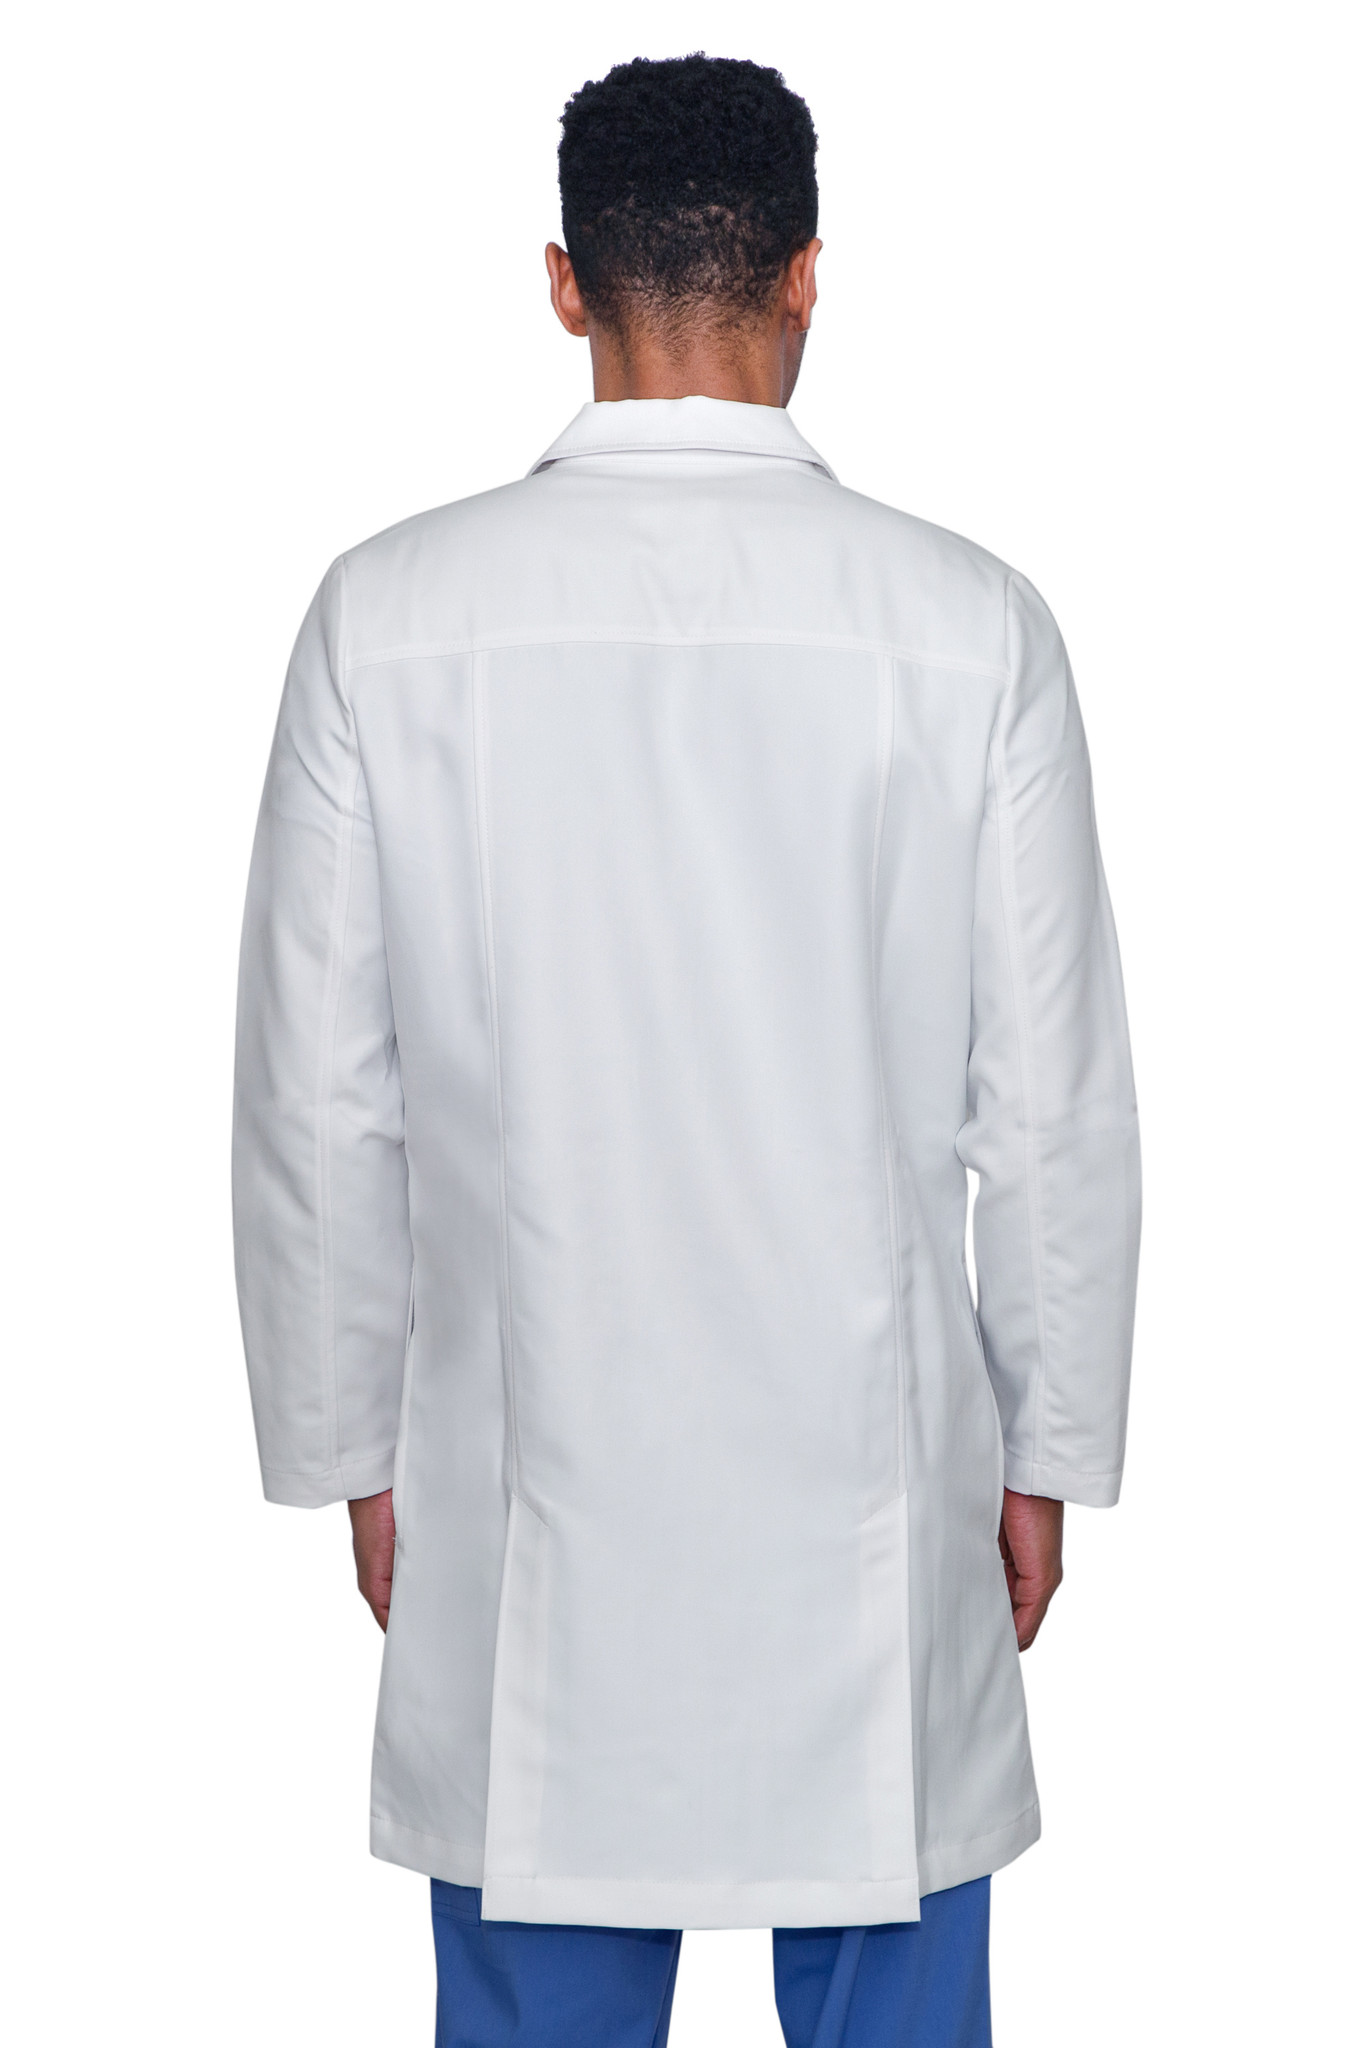 Healing Hands White Coat 5103 The Professional Lyndon Men's Lab Coat with Fluid Protection and Wrinkle Resistance Back Image